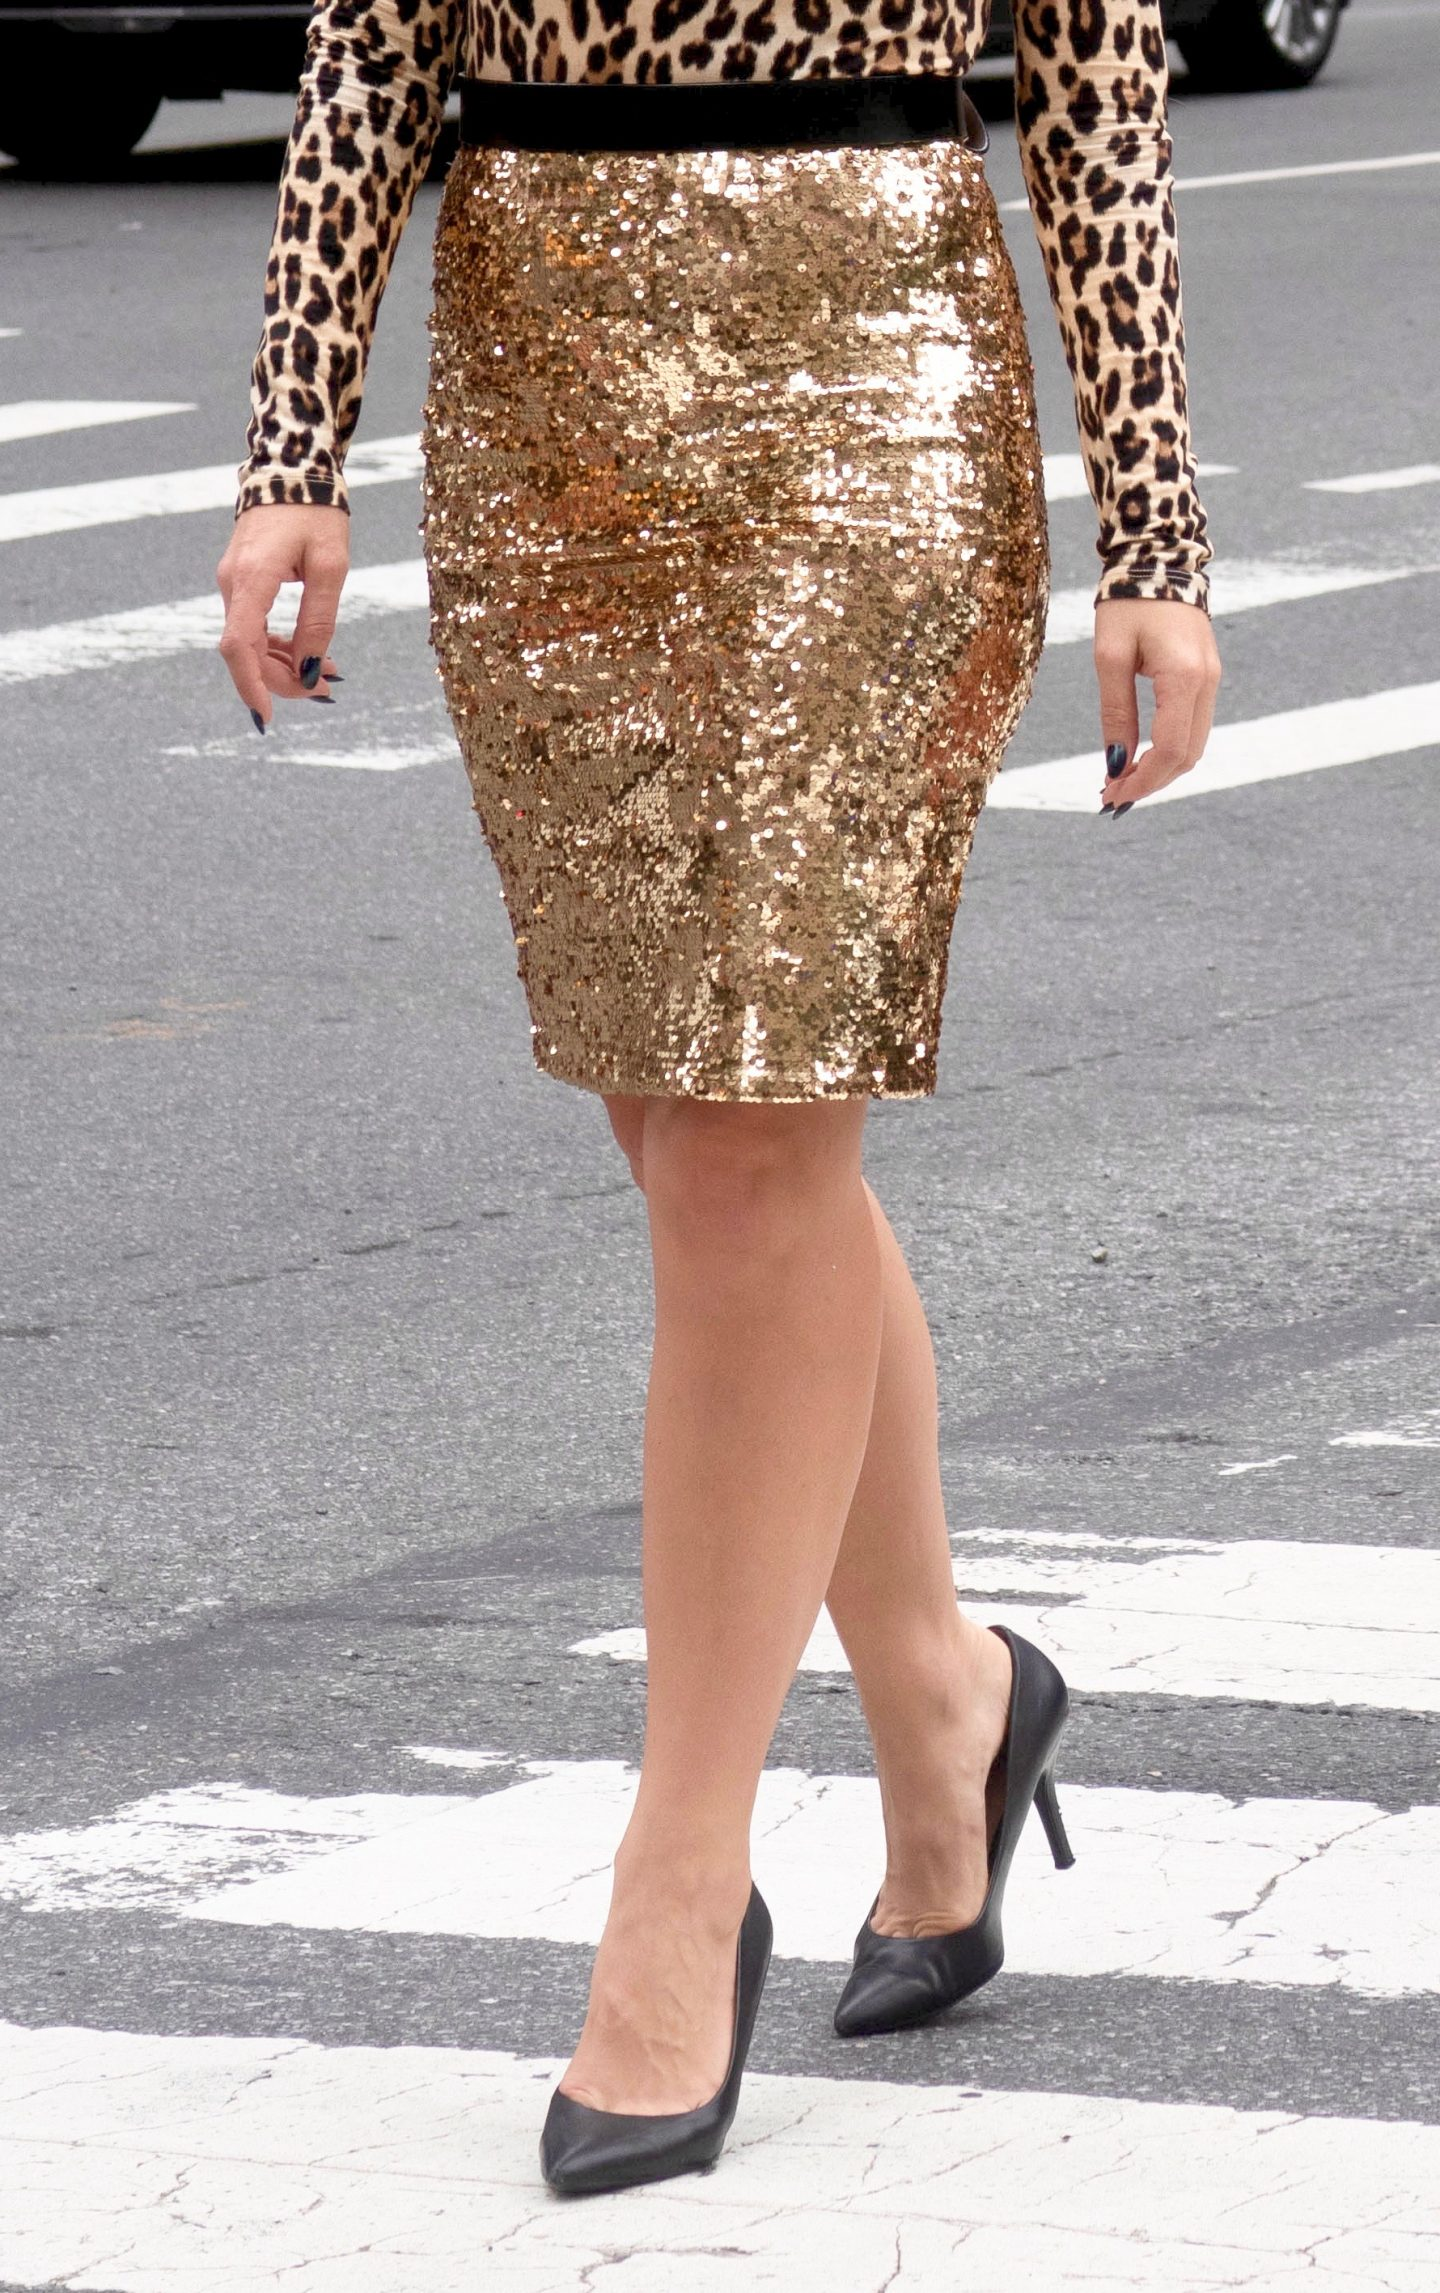 legallee blonde wearing gold sequin pencil skirt